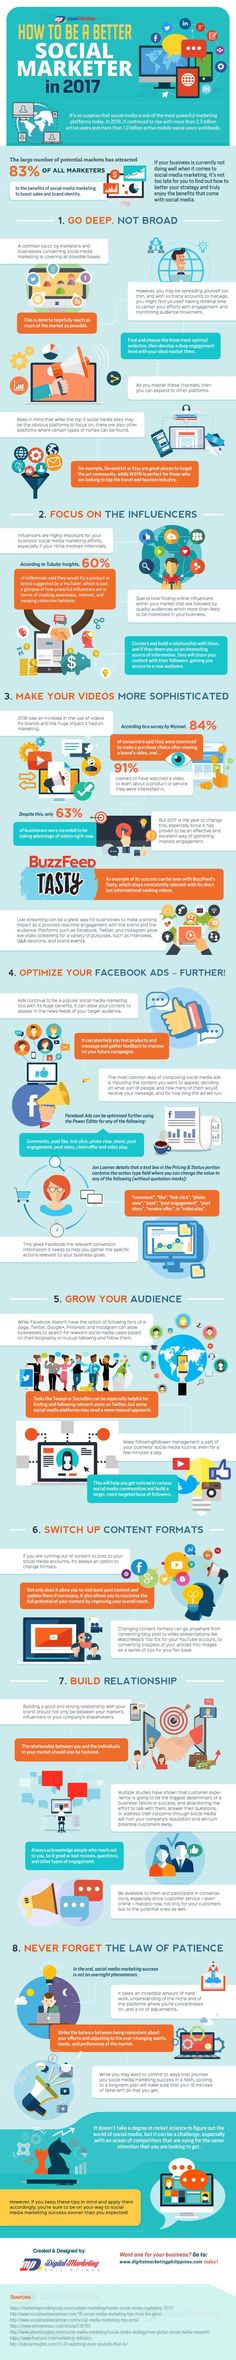 8 Essential Steps to Improve Your Social Media Marketing Efforts [Infographic] AND Take this Free Full Lenght Video Training on HOW to Start an Online Business